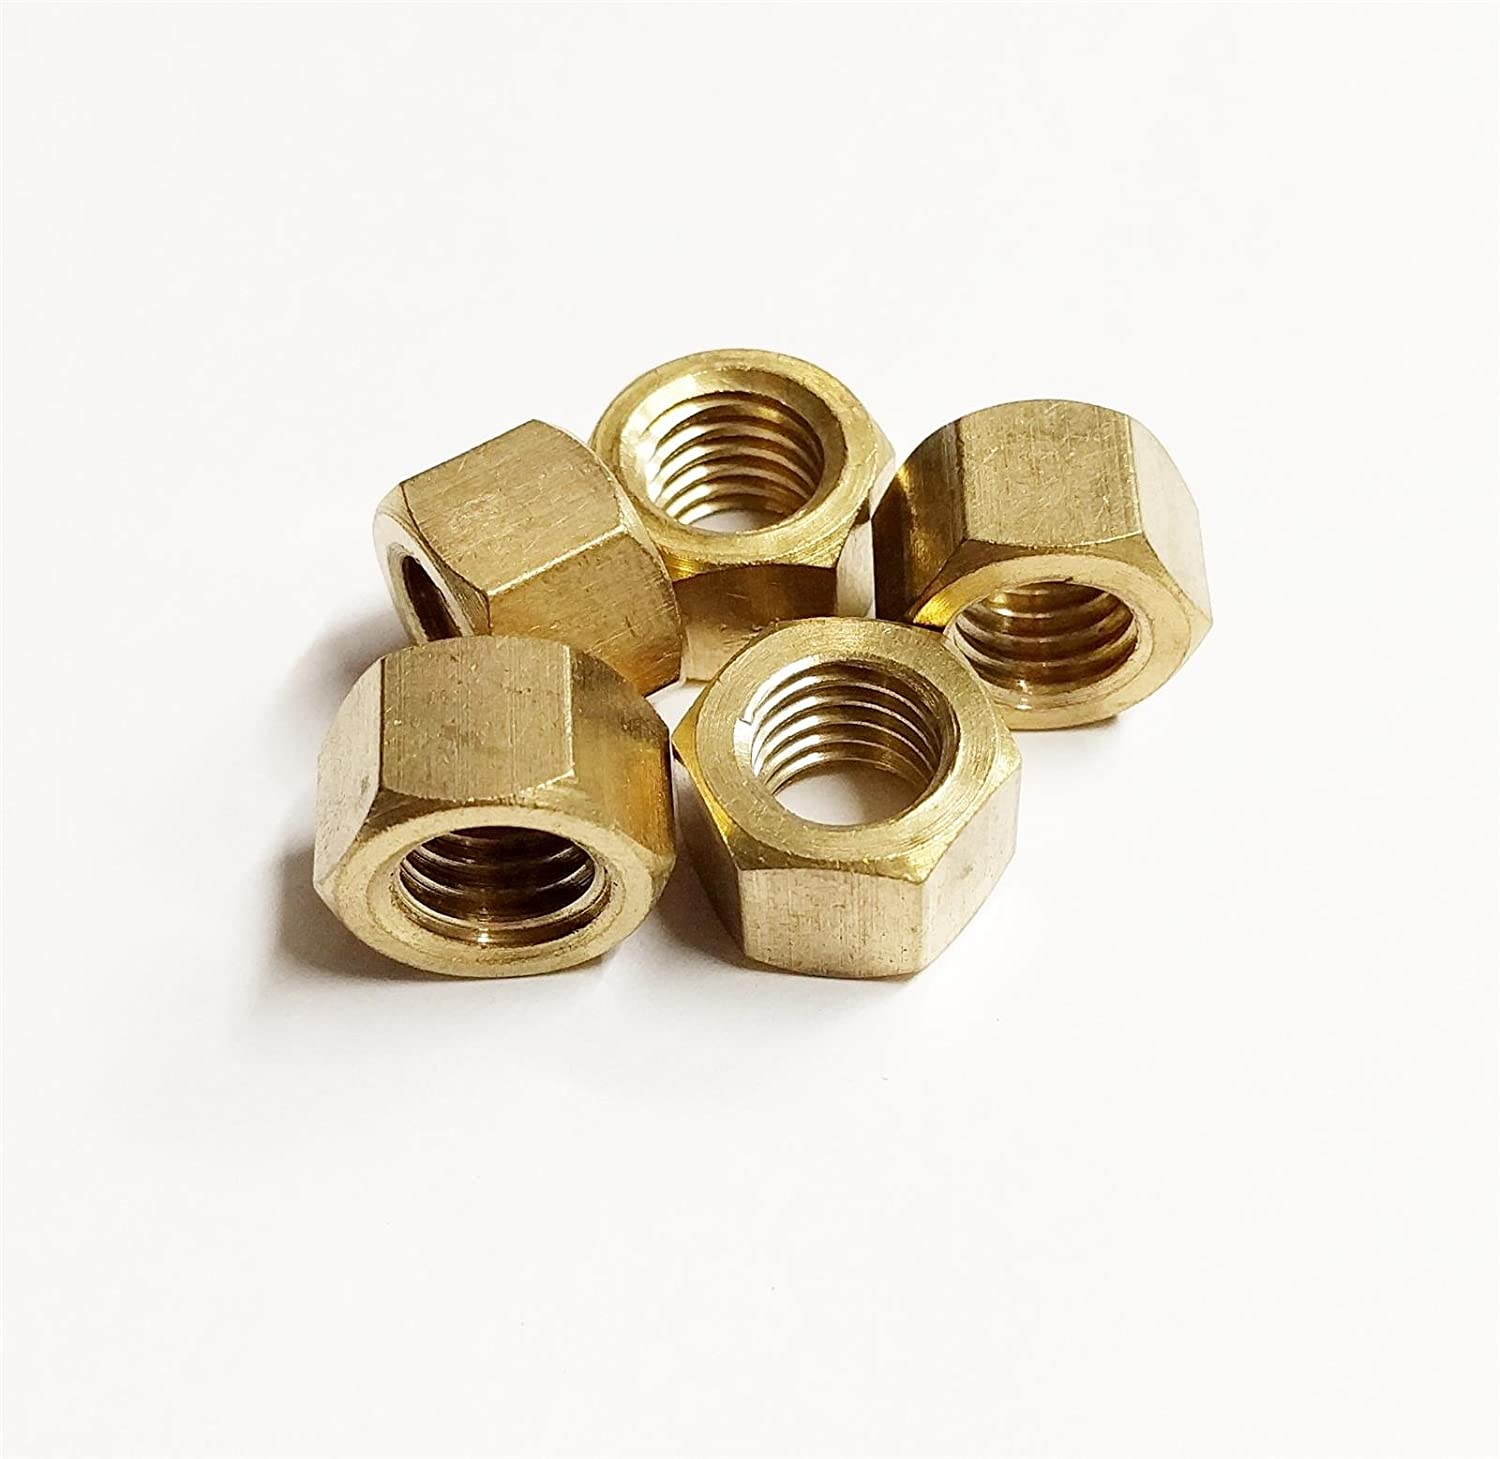 5x Brass Metric Exhaust Manifold Nut 10mm x 1.25mm High Temperature Nuts AutoPower